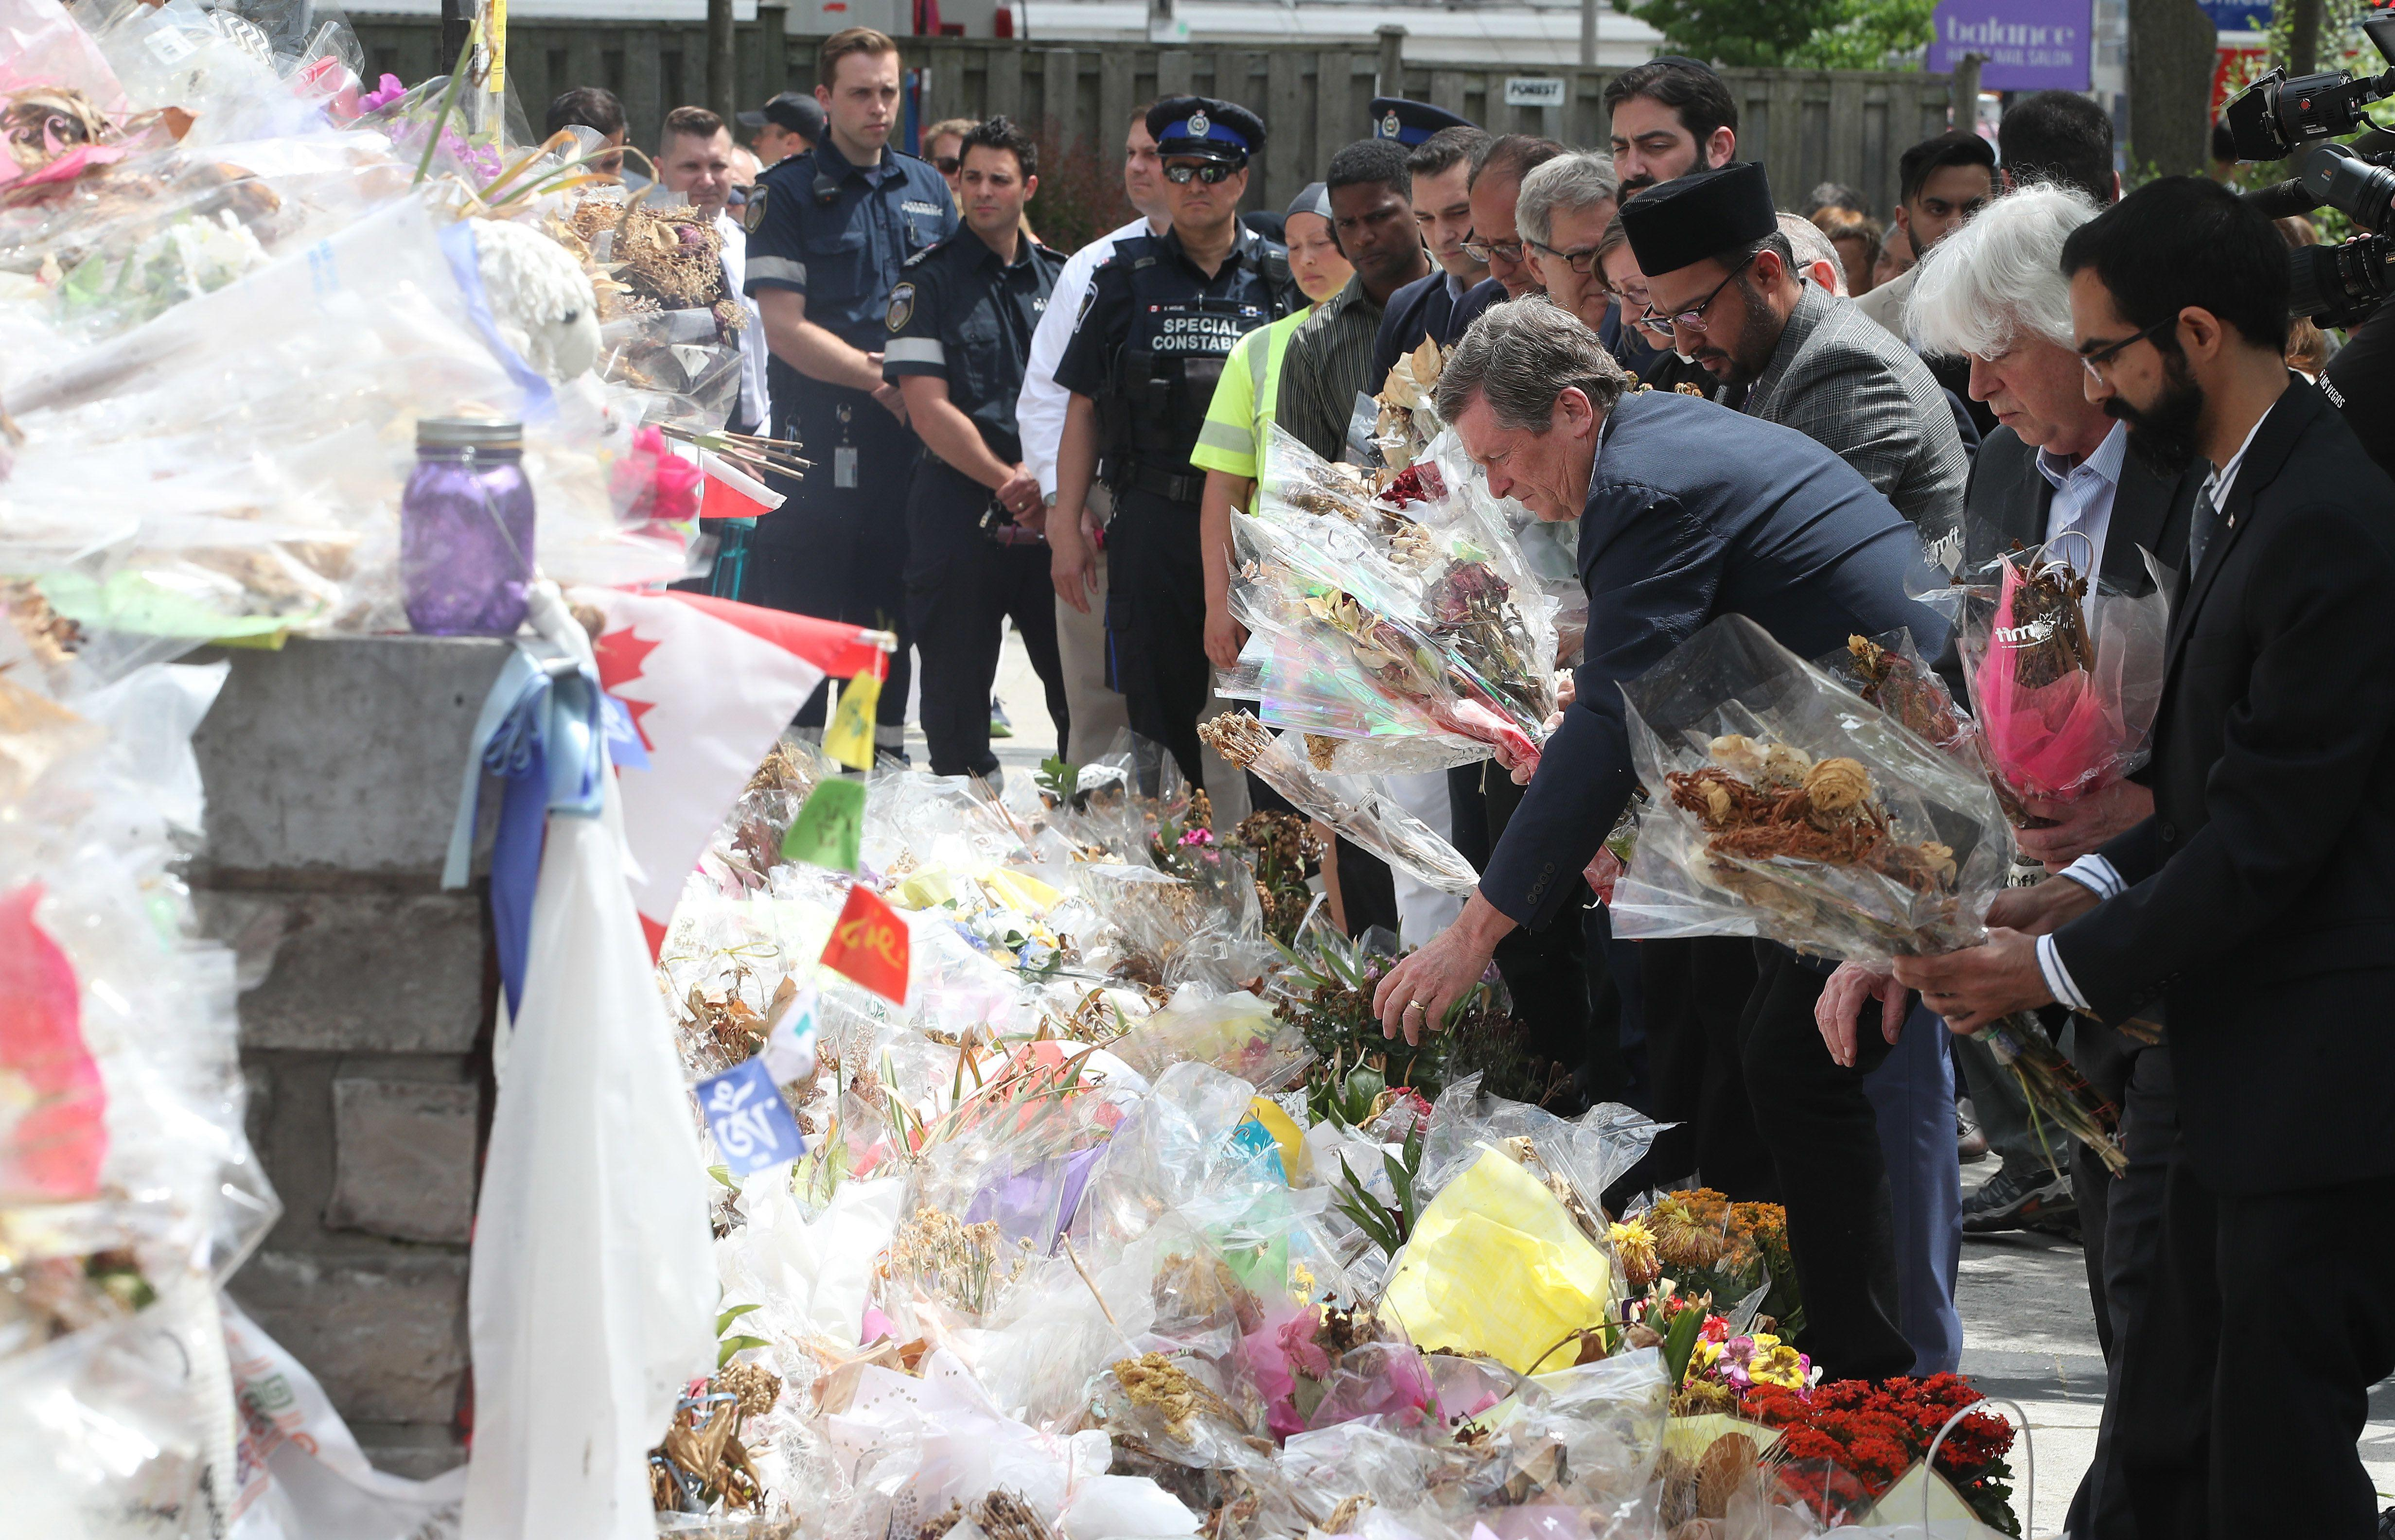 TORONTO, ON- JUNE 3 - Toronto Mayor John Tory picks u flowers along with religious leaders, first responders and people affected came out to decommission the memorials to the 10 people killed in the Yonge Street van attack. at in Toronto. June 3, 2018. (Steve Russell/Toronto Star via Getty Images)